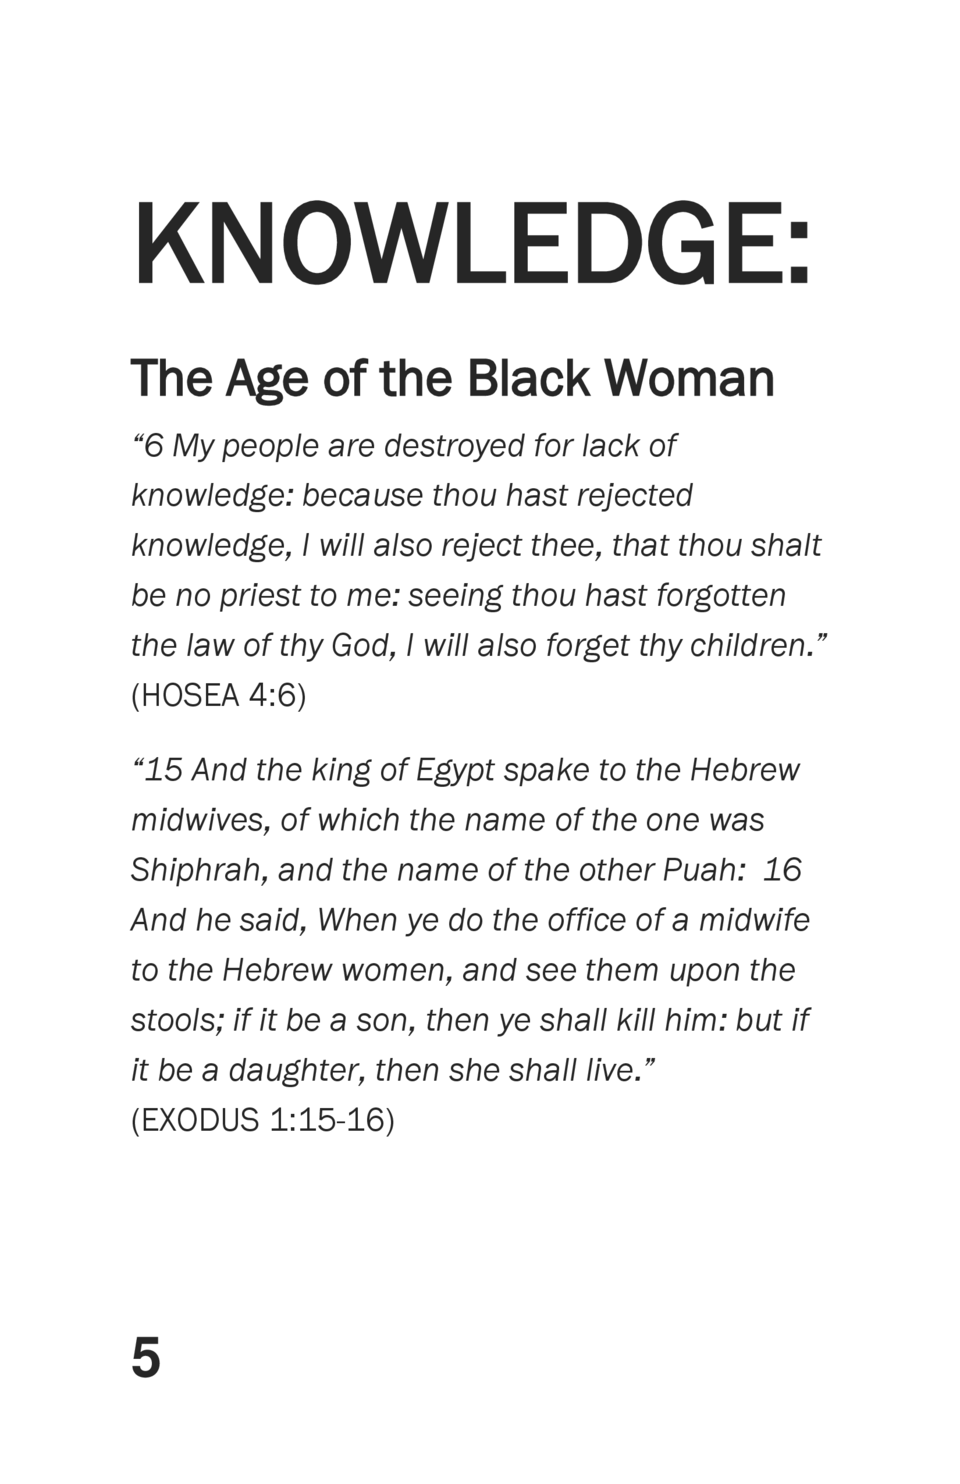 KNOWLEDGE  The Age of the Black Woman    6 My people are destroyed for lack of knowledge  because thou hast rejected knowl...